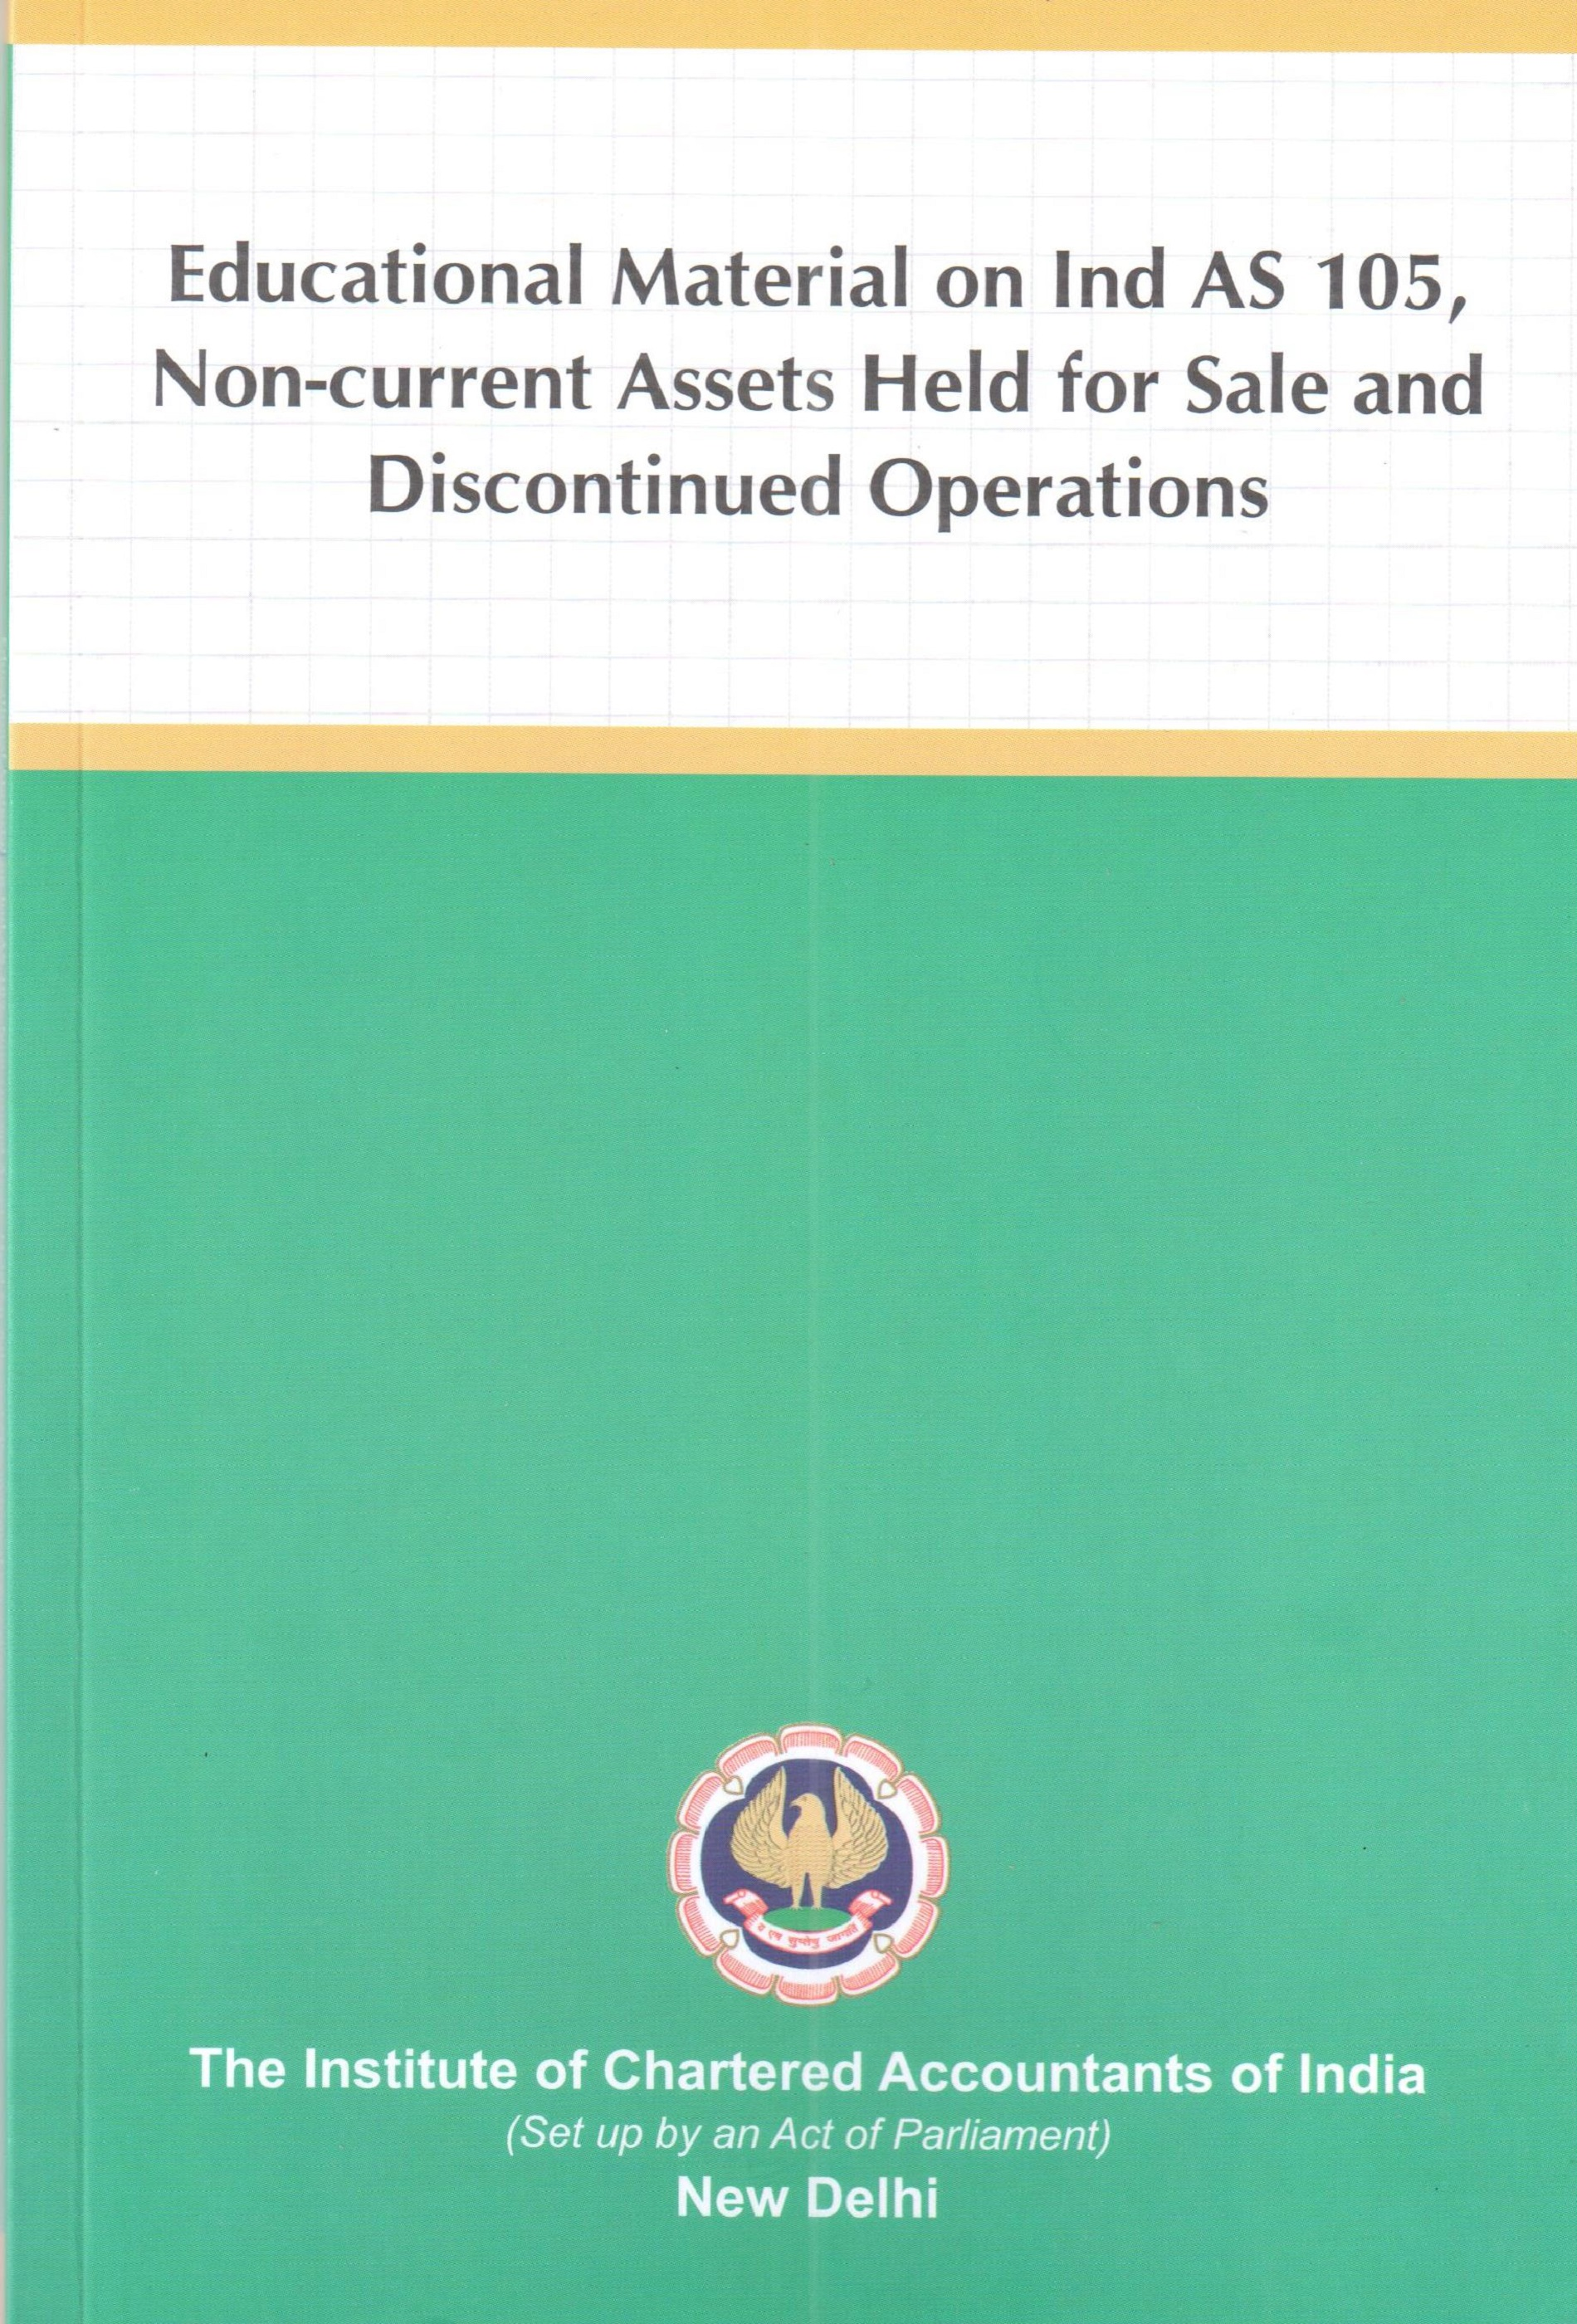 Educational Material on Ind AS 105, Non-current Assets Held for Sale and Discontinued Operations (February, 2021)